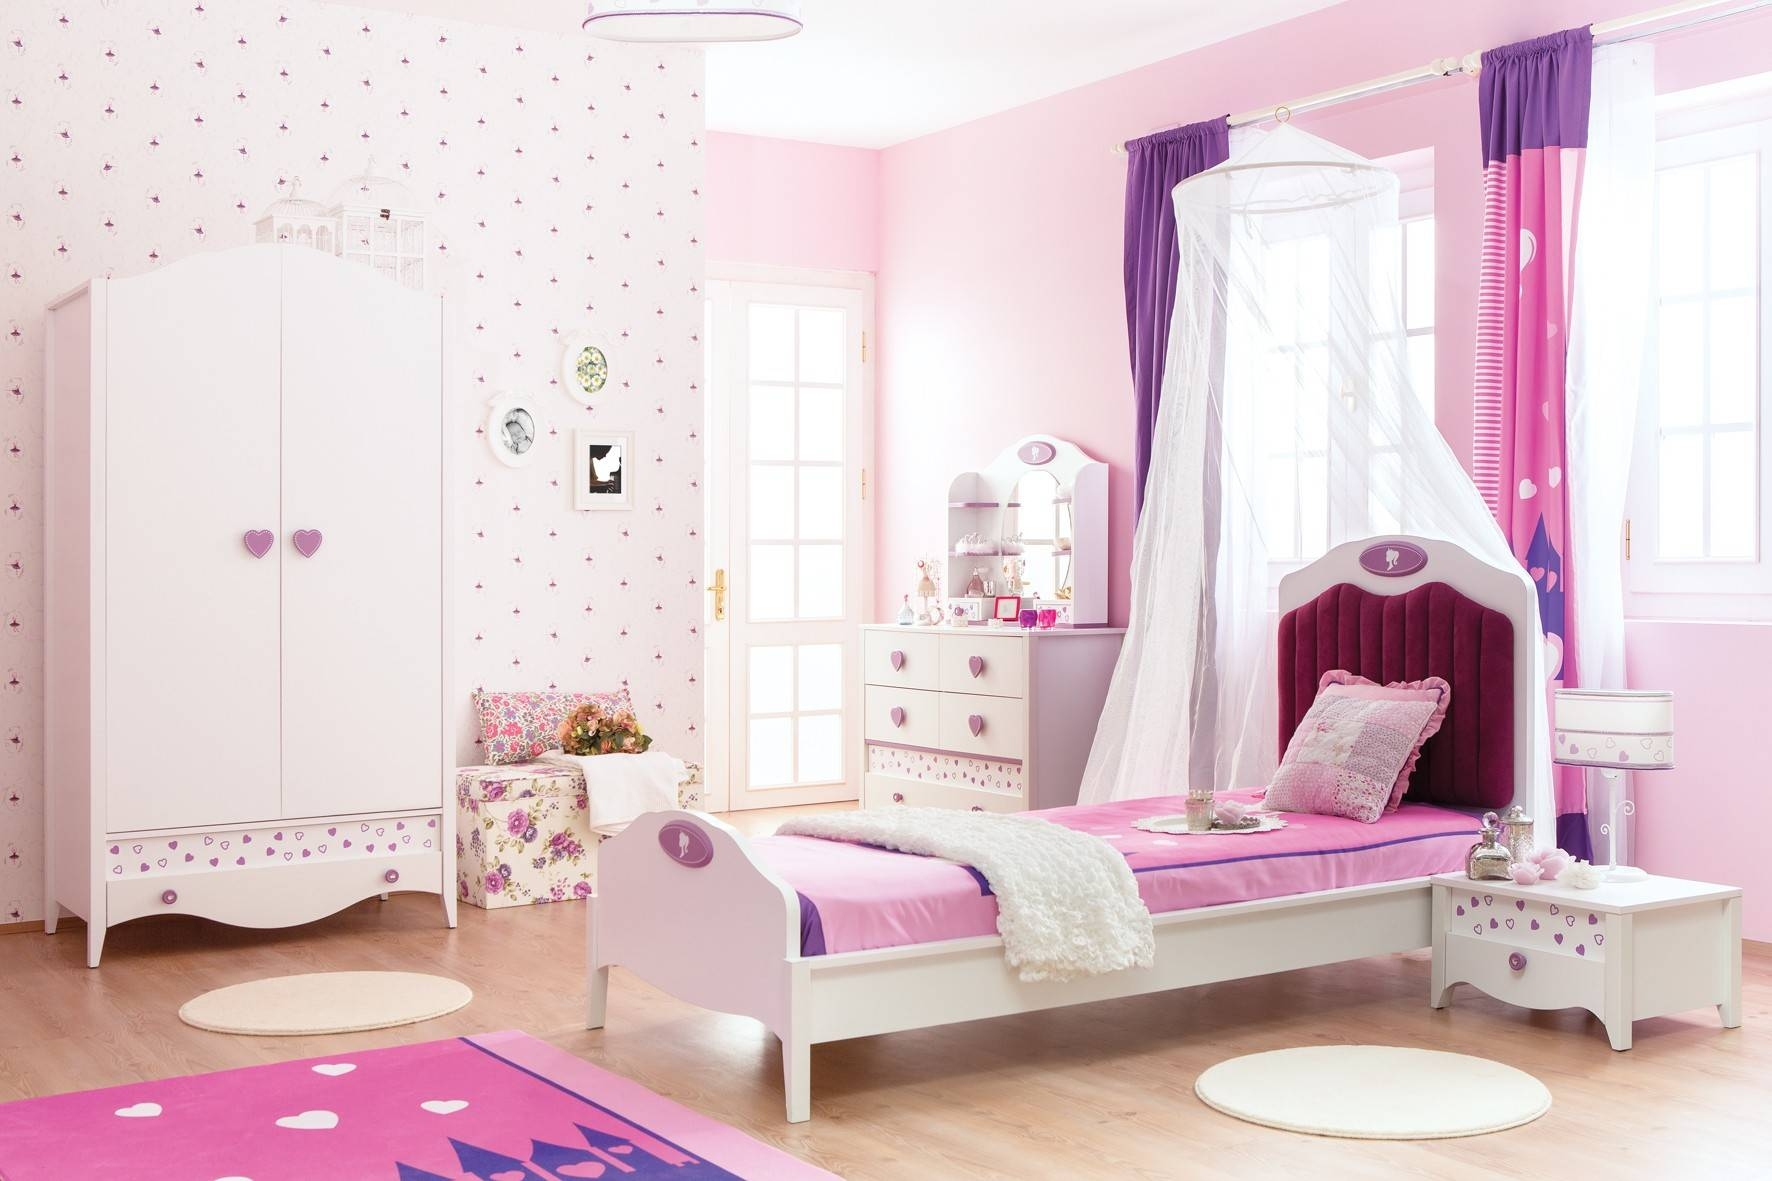 Newjoy Princess Girl's Bedroom Furniture Set with Princess Wardrobes (Image 8 of 15)